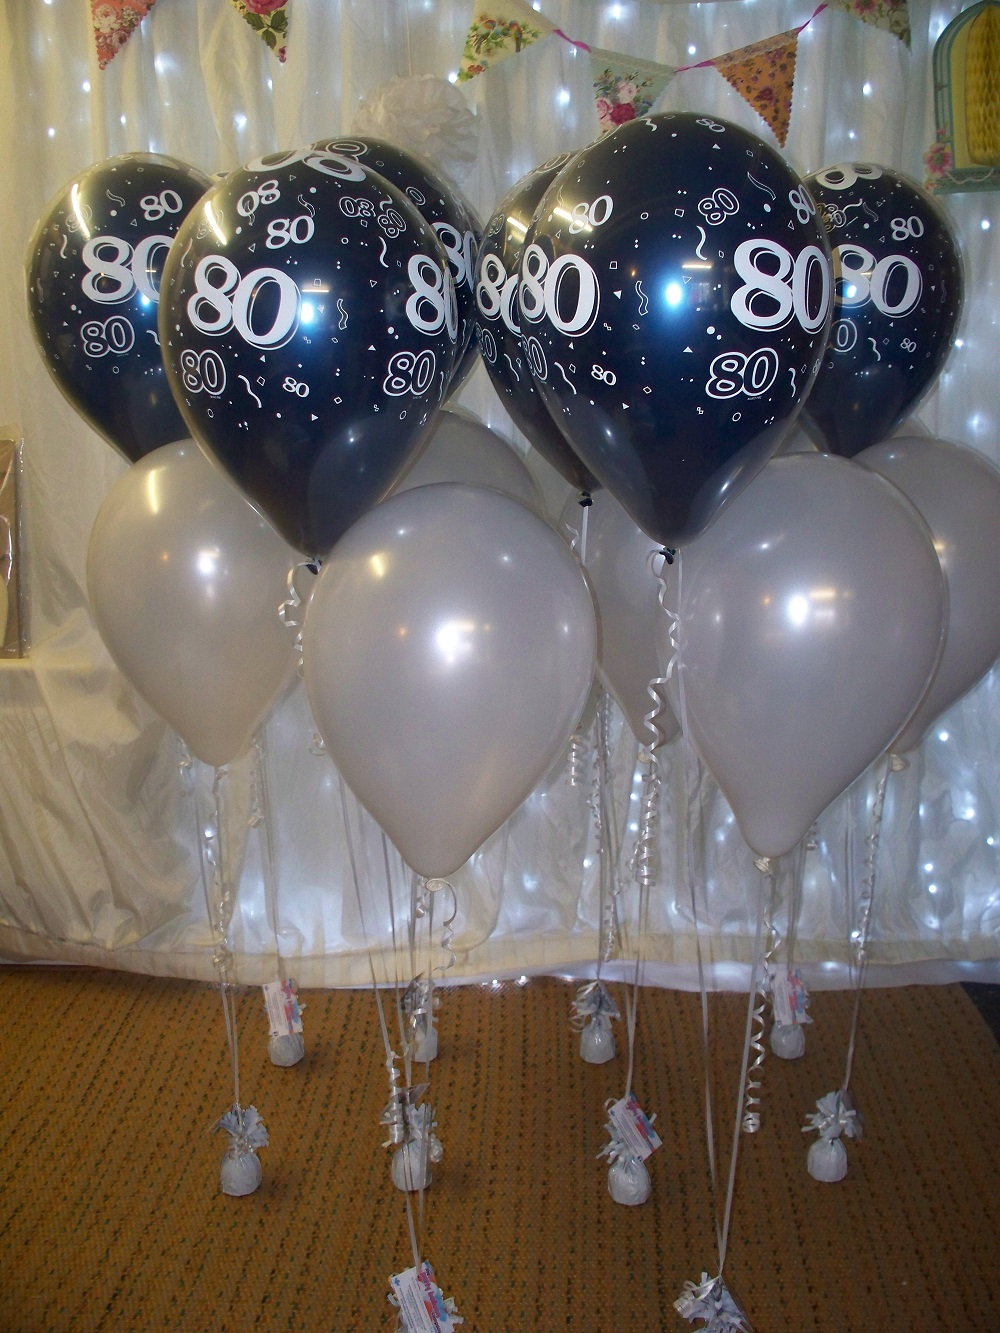 color theme for 80th birthday party ; colors-for-80th-birthday-to-make-your-astounding-Birthday-invitations-more-elegant-16